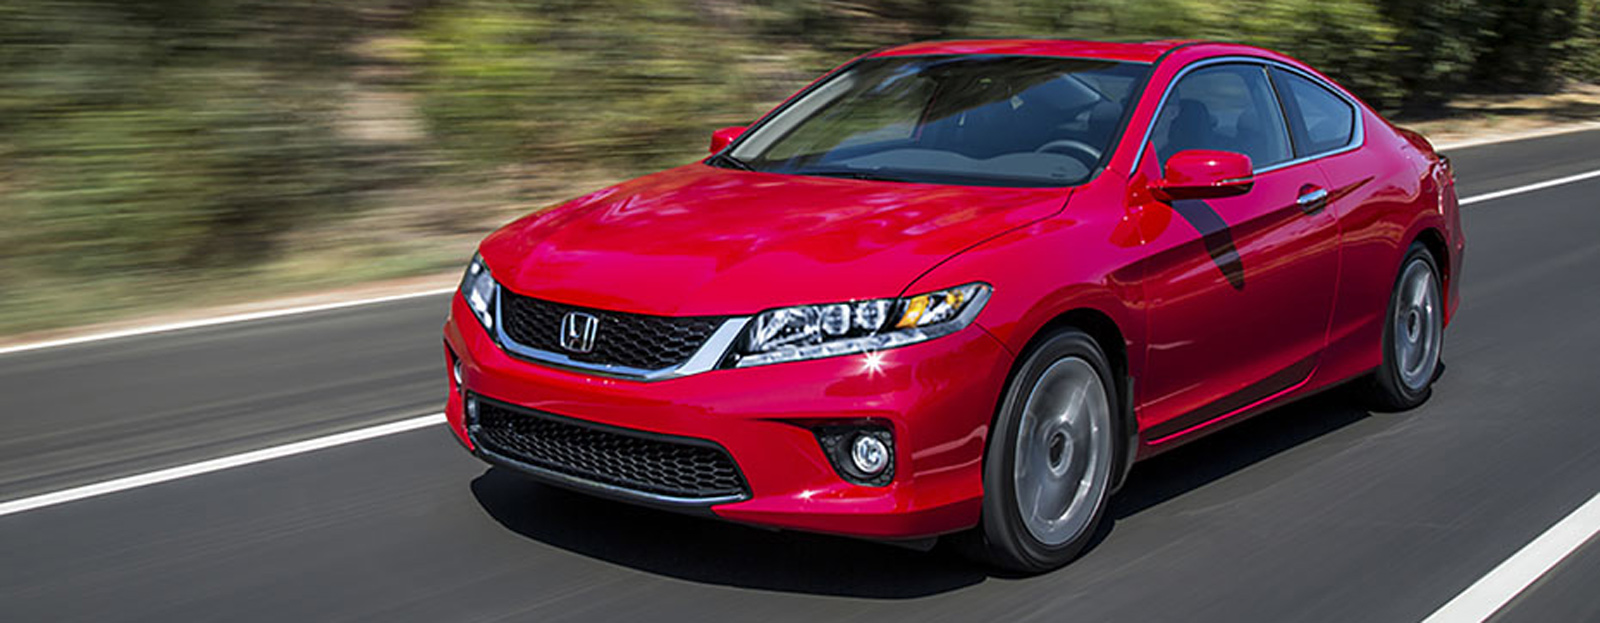 honda accord coupe 2015. 2015 honda accord coupe